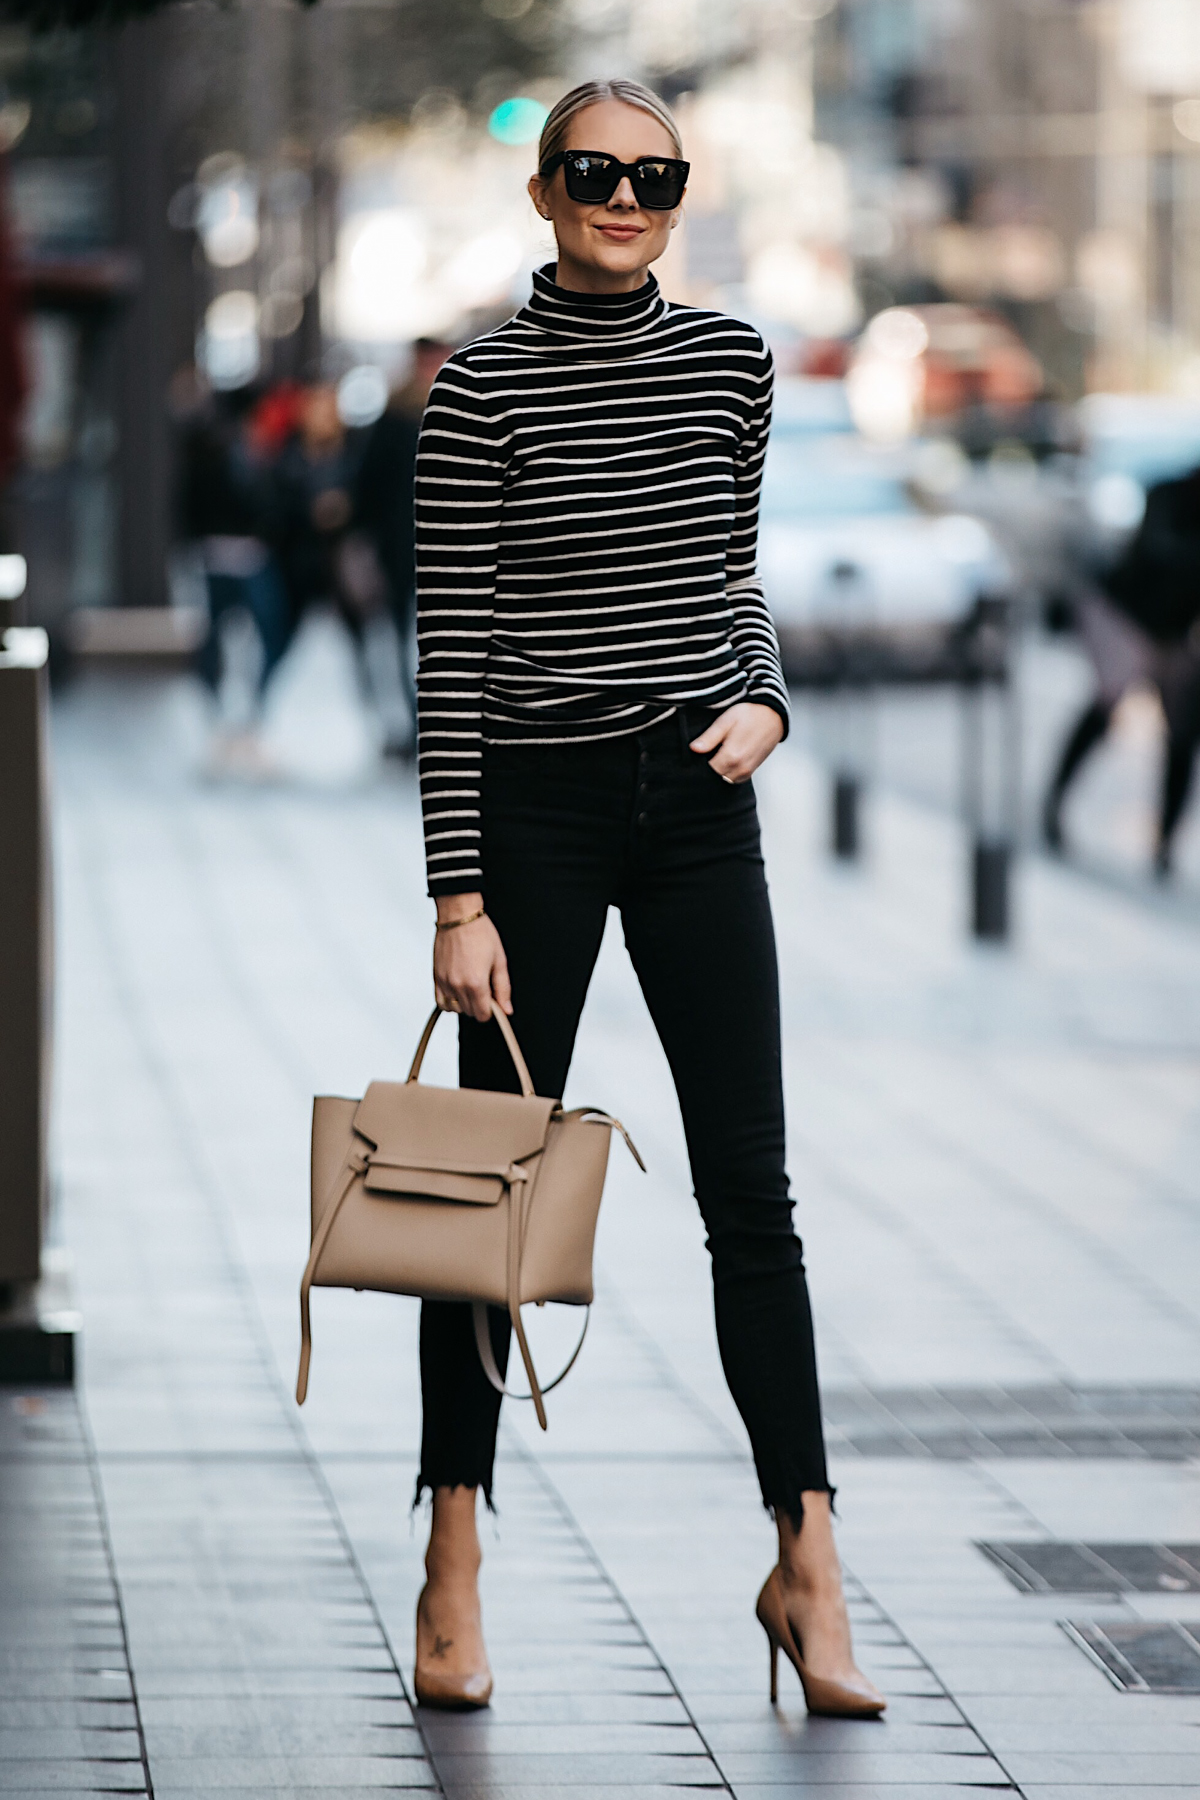 Blonde Woman Wearing Nordstrom Black White Striped Turtleneck Sweater Black Skinny Jeans Nude Pumps Outfit Celine Mini Belt Bag Fashion Jackson Dallas Blogger Fashion Blogger Street Style